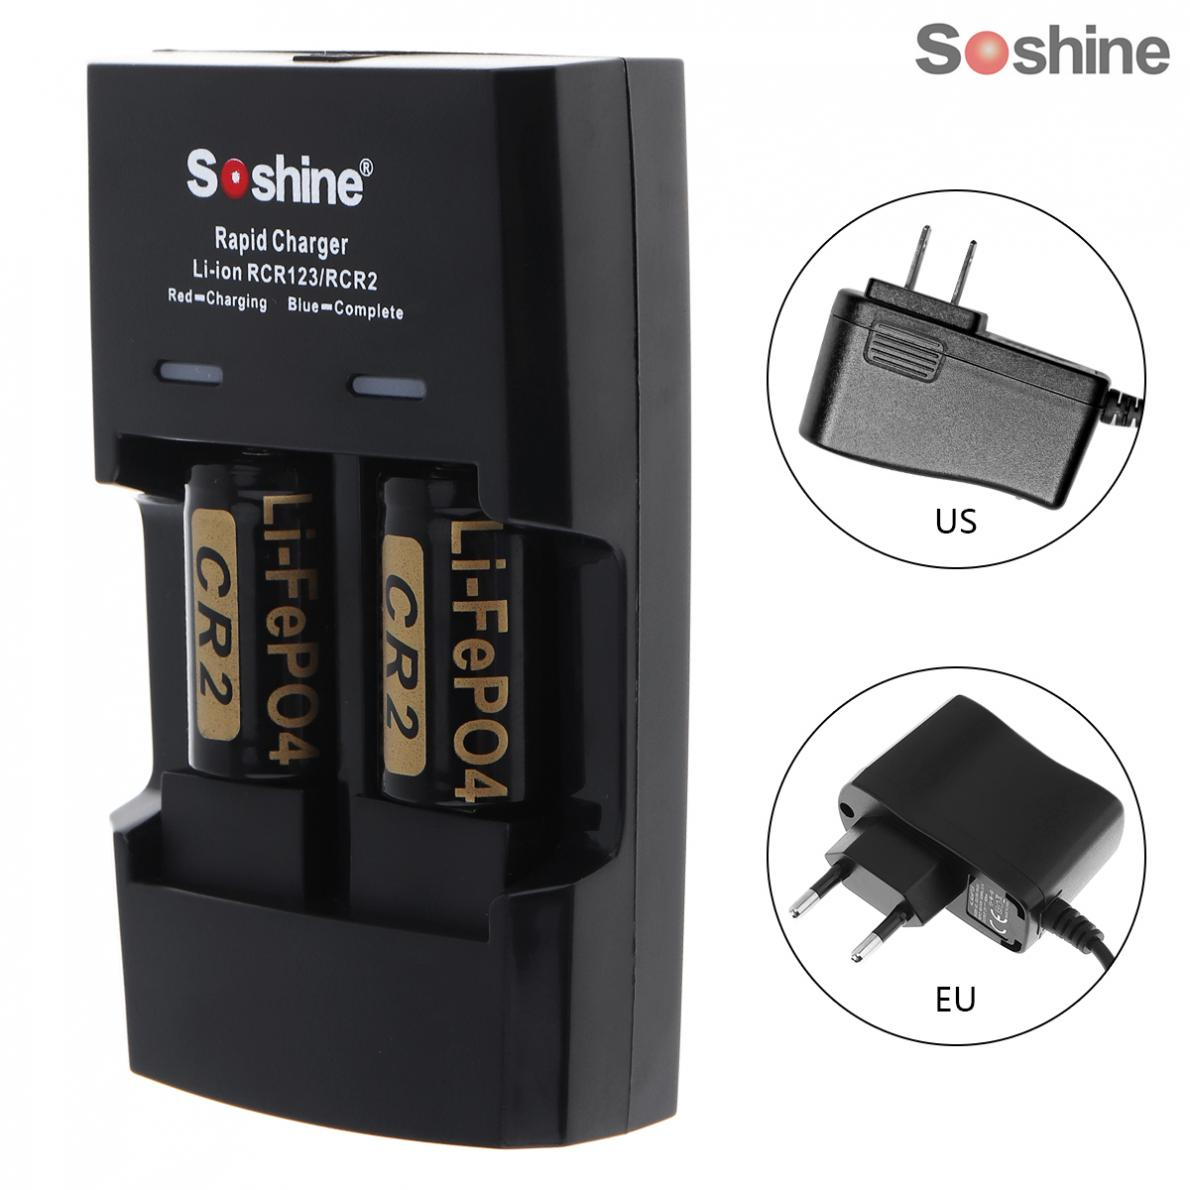 все цены на Soshine Li-FePO4 CR123 / CR2 Battery Intelligent Rapid Charger + 3V 400mAh CR2 LiFePO4 Rechargeable Battery